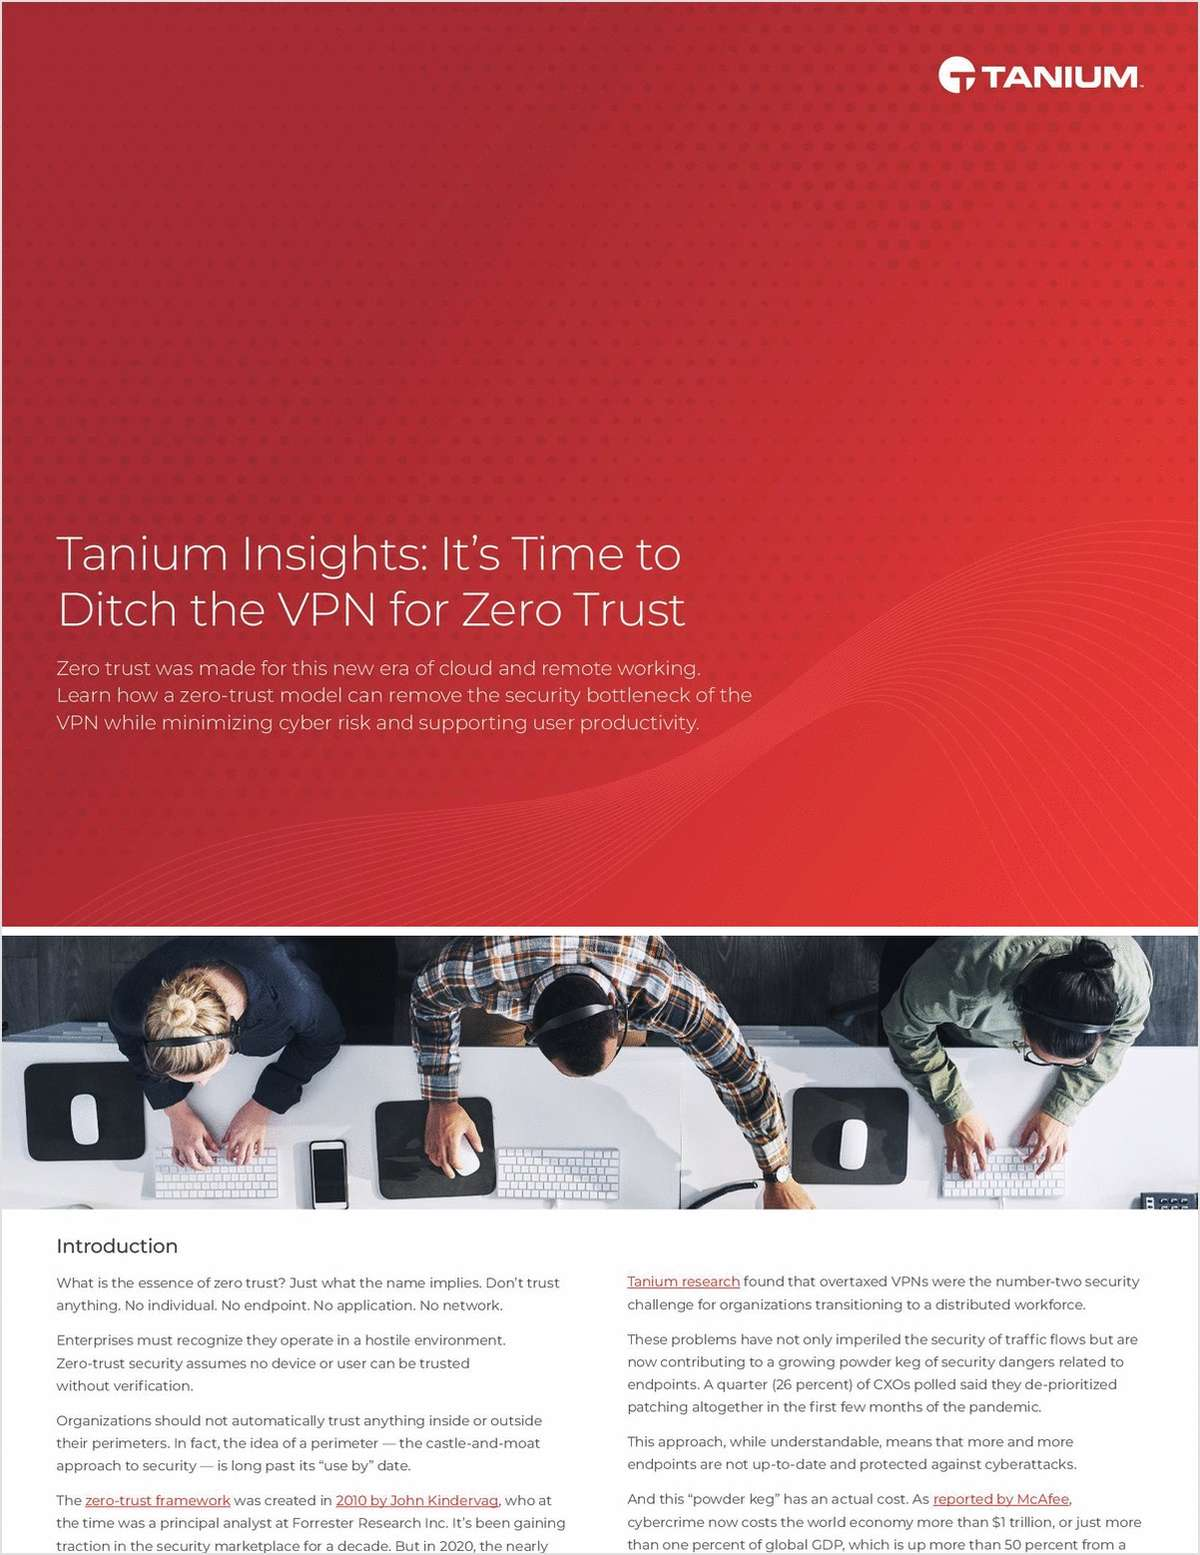 Tanium Insights: It's Time to Ditch the VPN for Zero Trust